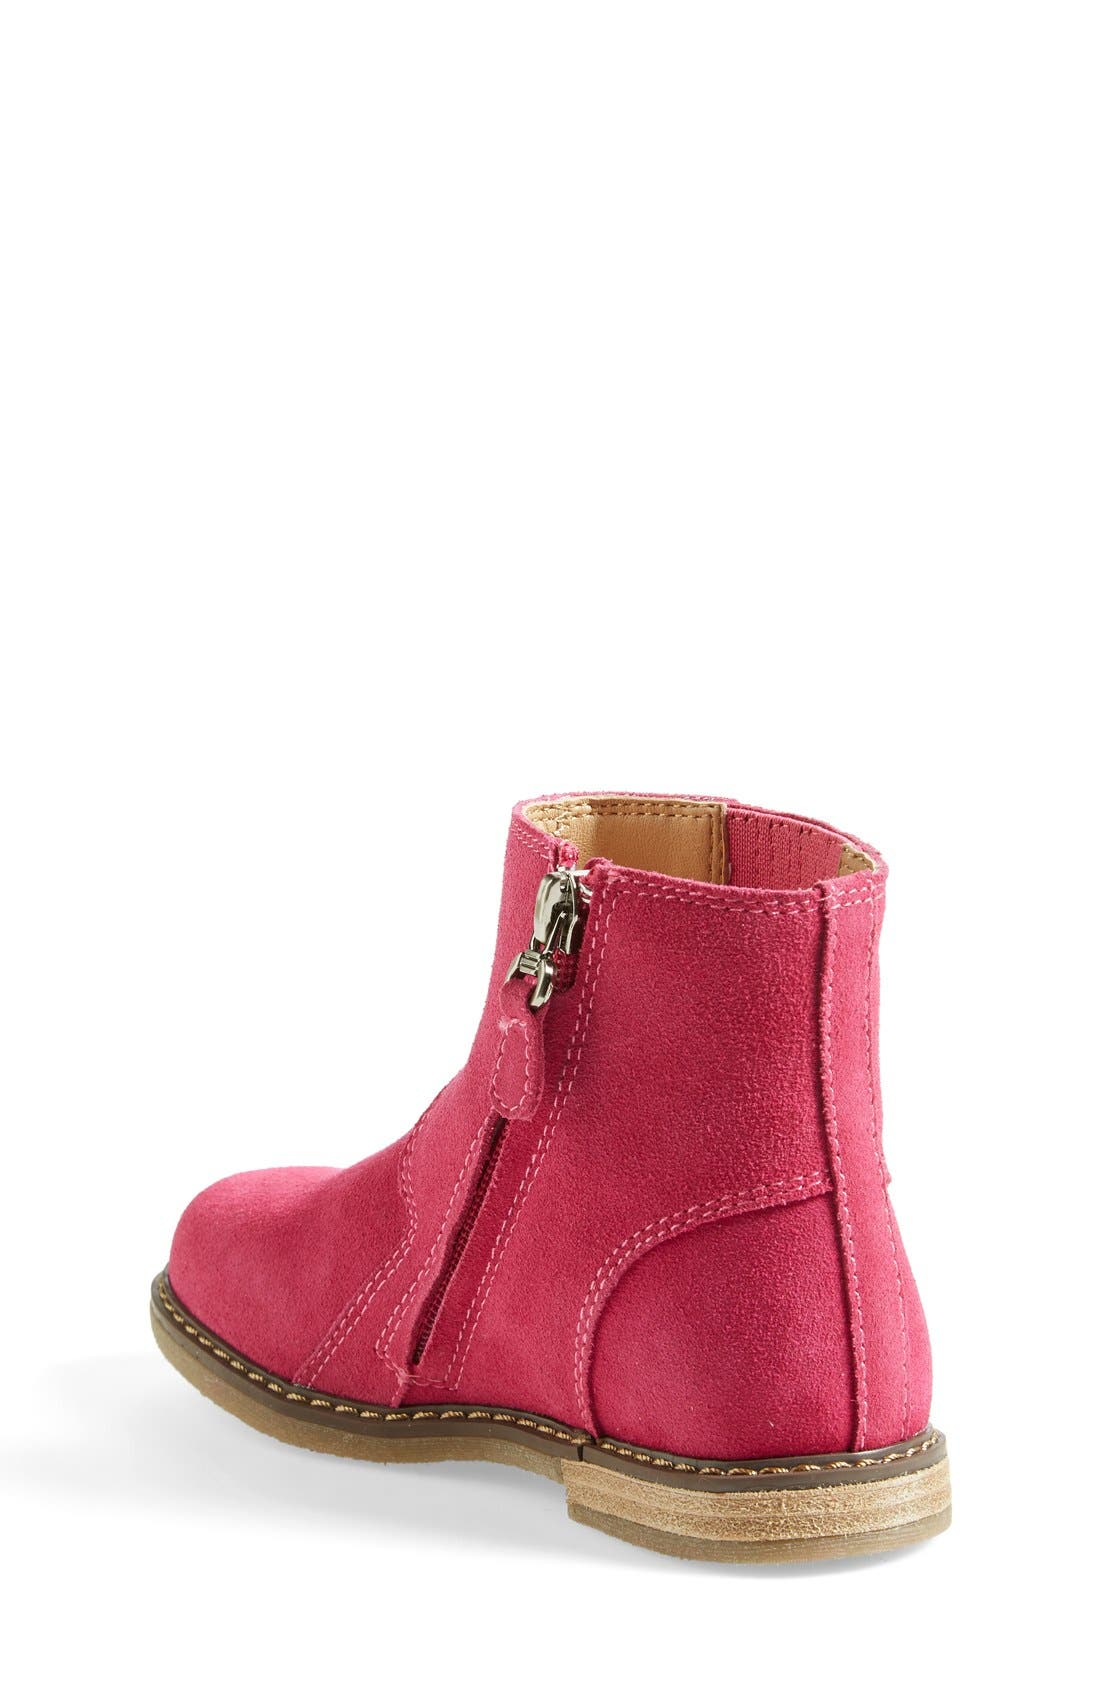 Alternate Image 2  - Tucker + Tate 'Tegan' Ankle Bootie (Toddler & Little Kid)